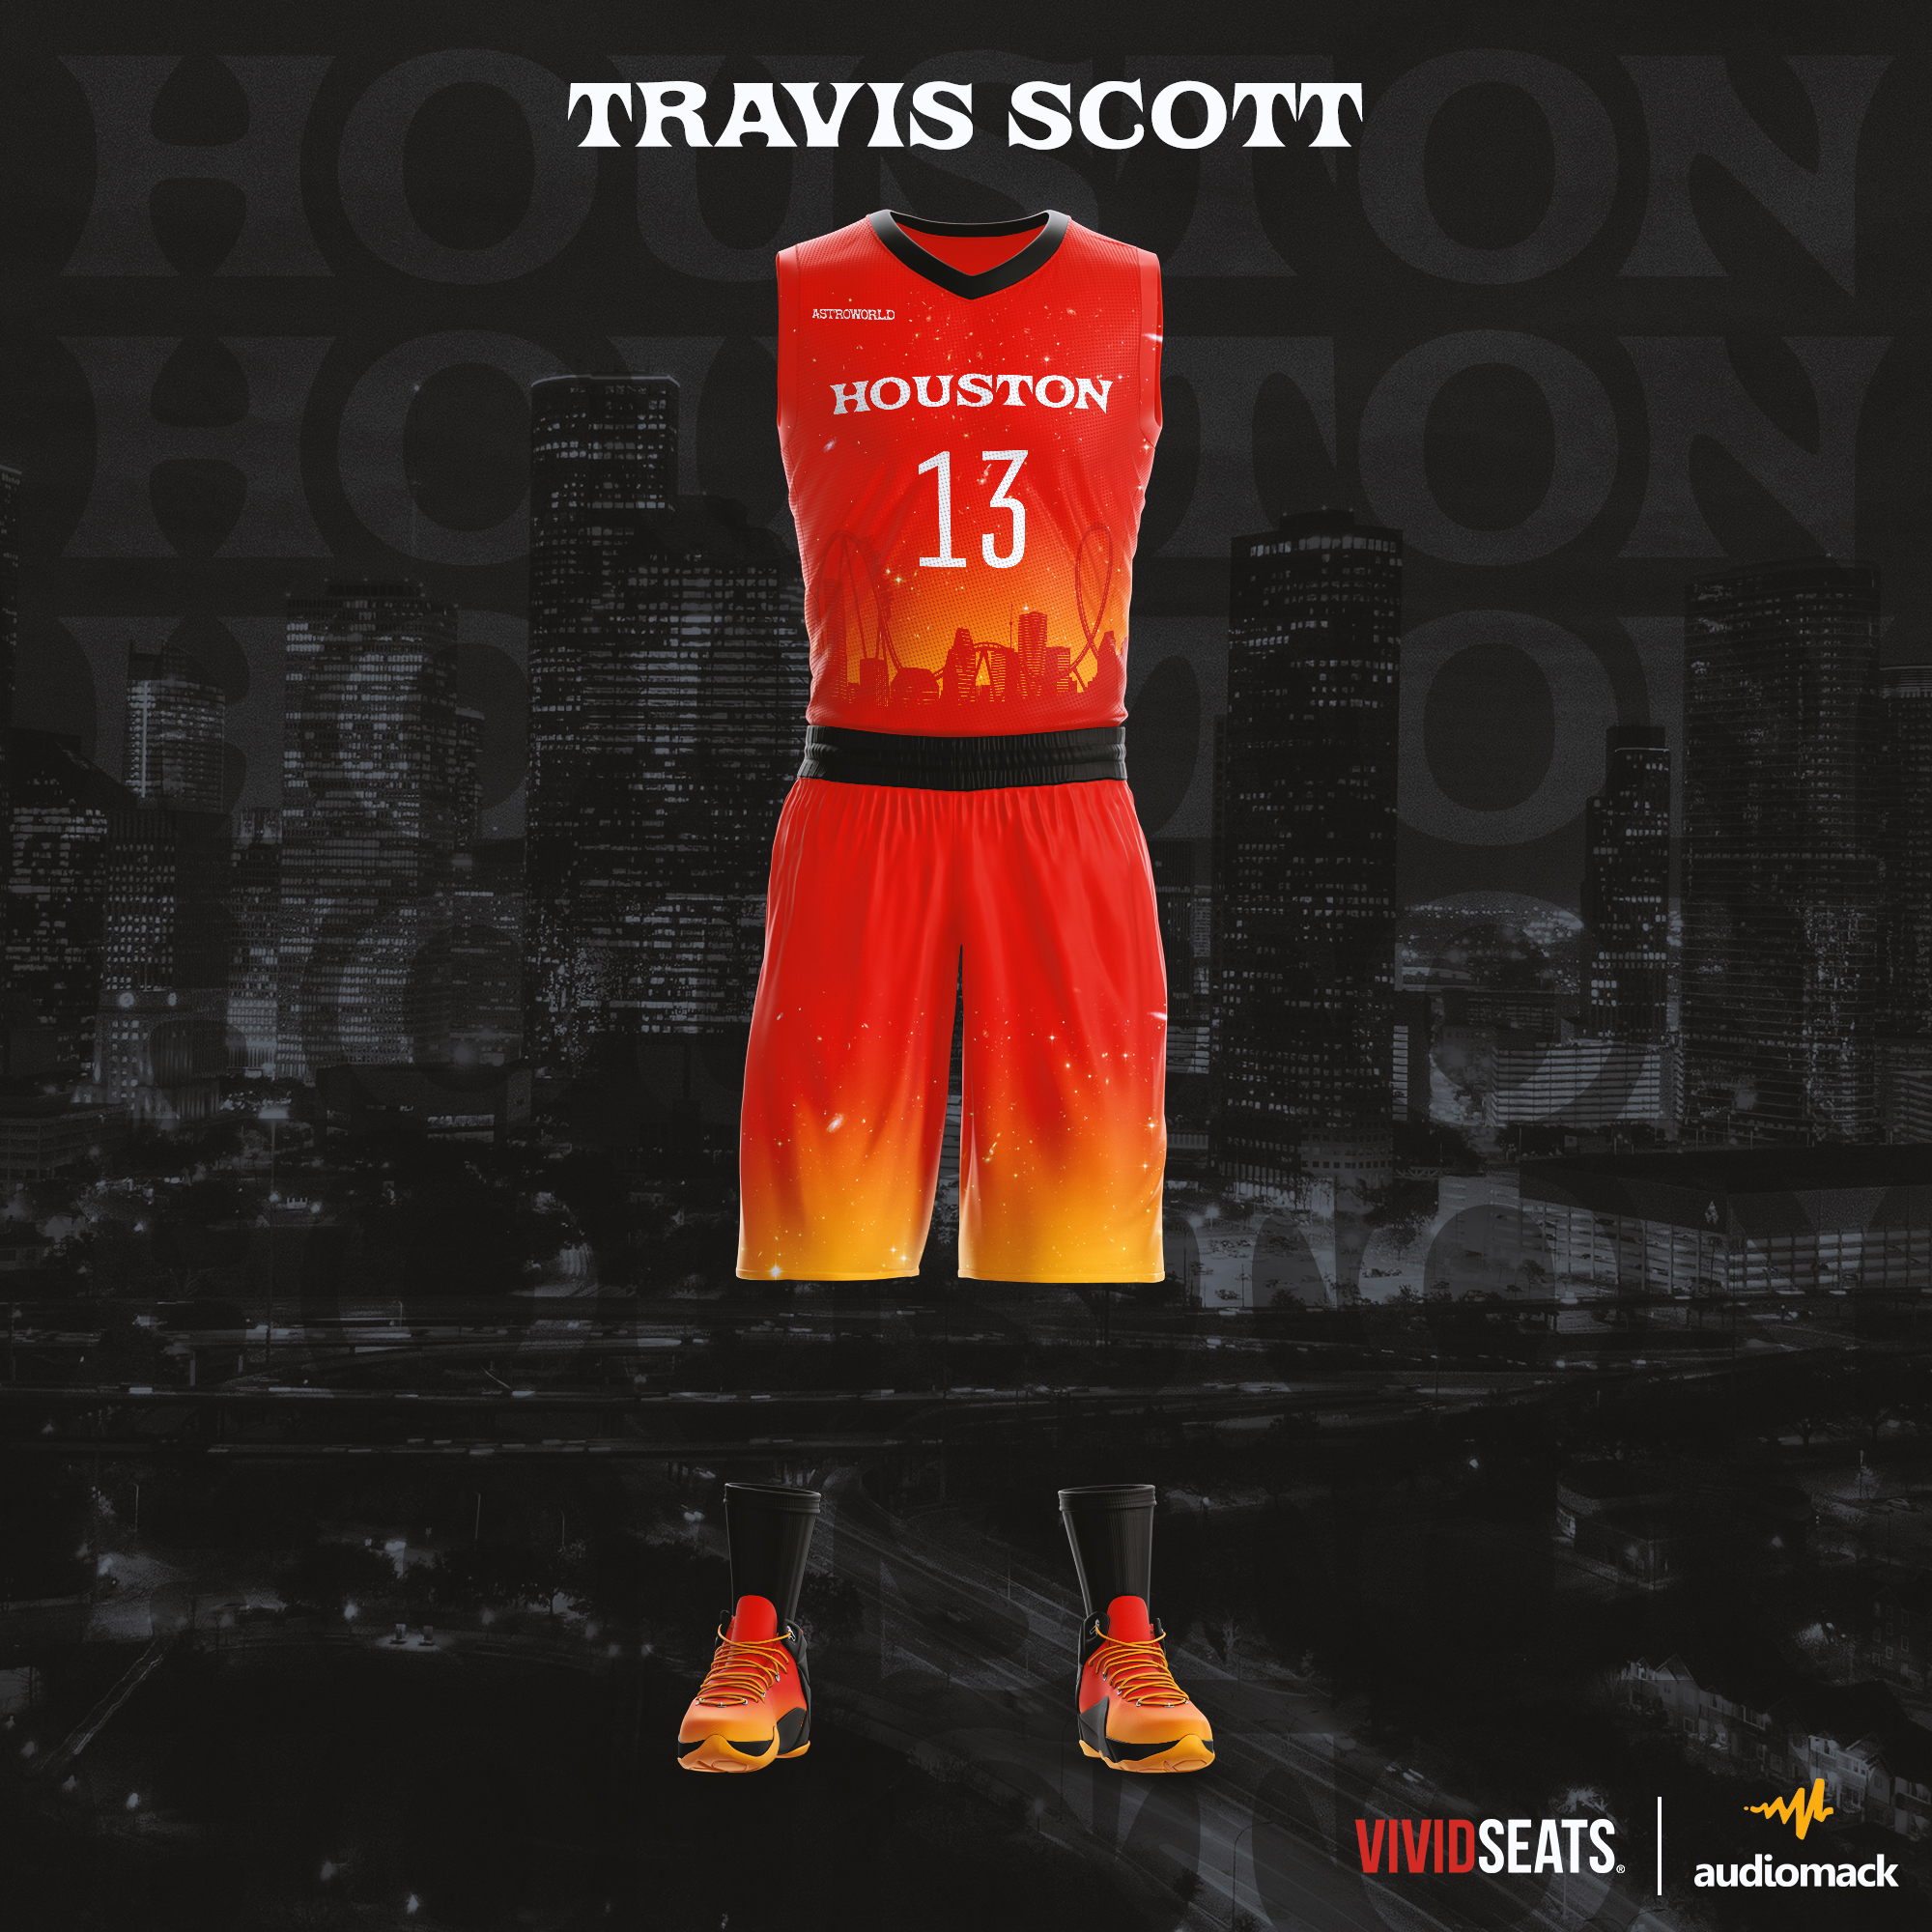 b81b28795e31 Vivid Seats and Audiomack Release Hometown Hoops Jersey Designs